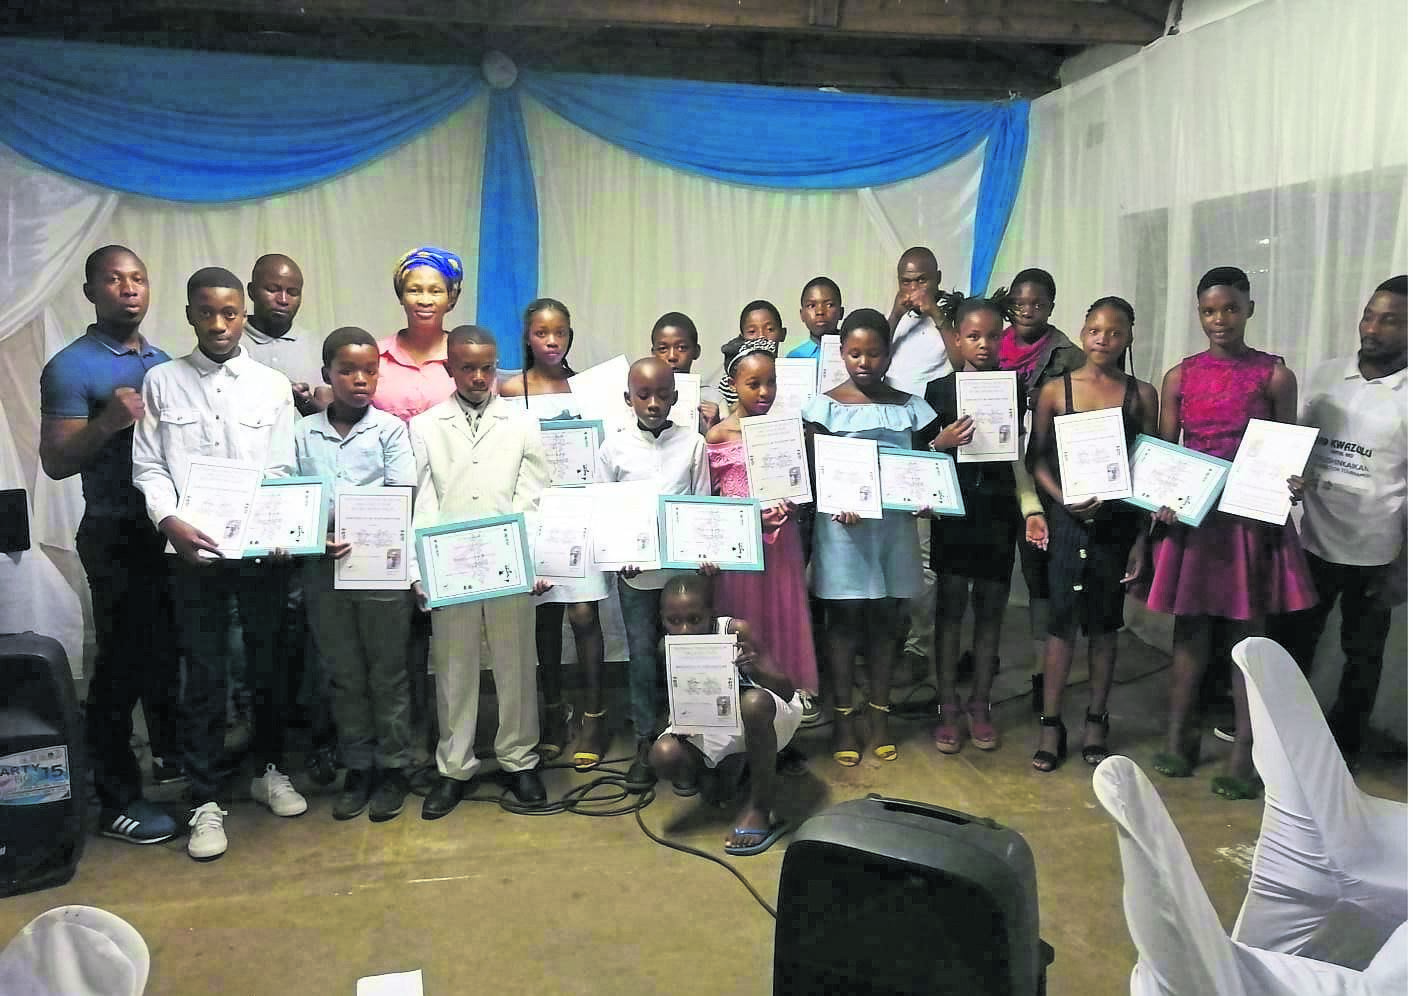 Members of Umvoti Aids Centre congratulate the young karatekas. photo: supplied